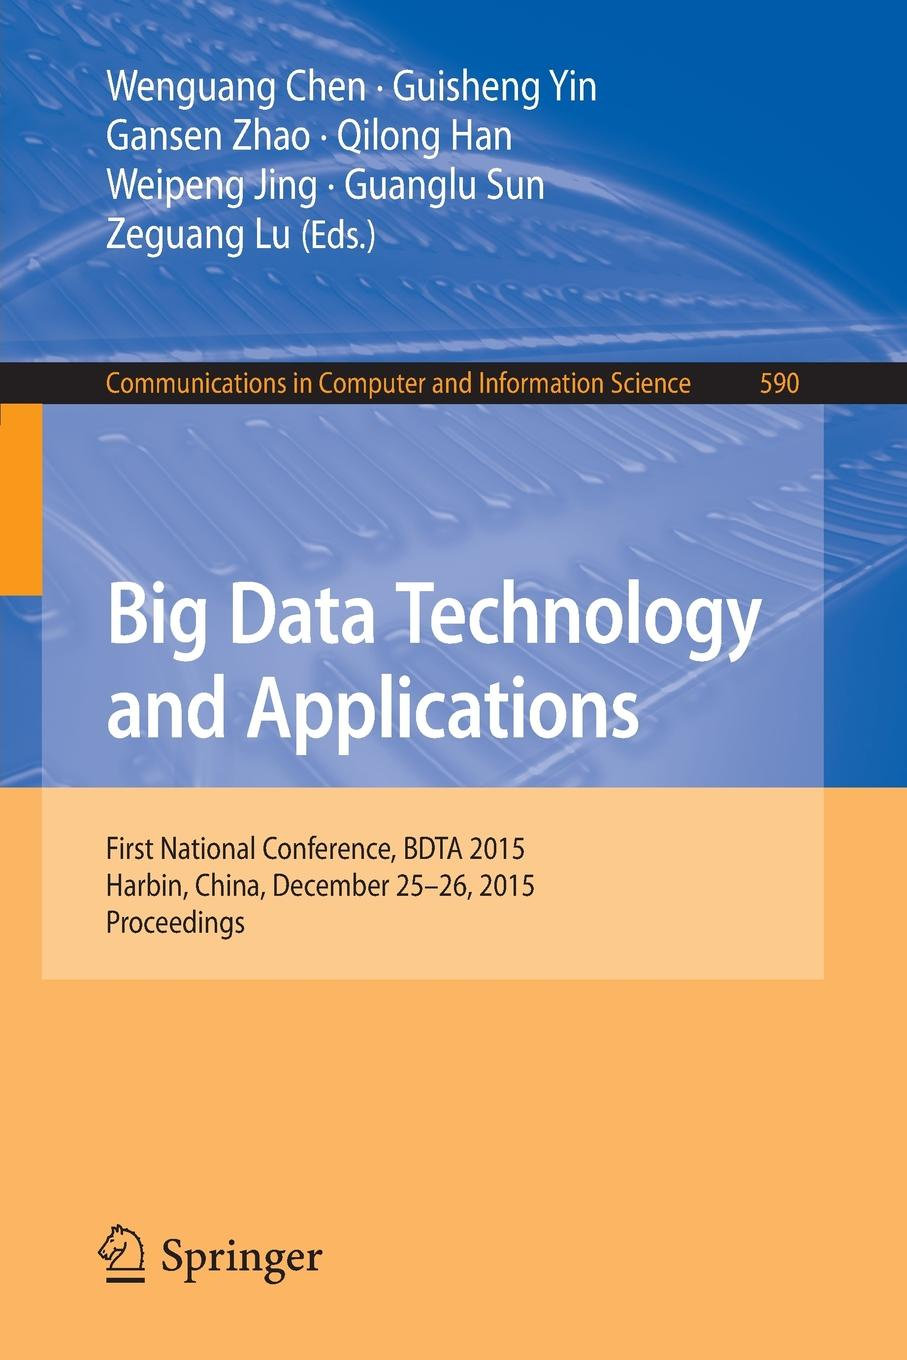 Big Data Technology and Applications. First National Conference, BDTA 2015, Harbin, China, December 25-26, 2015. Proceedings nick jenkins smart grid technology and applications